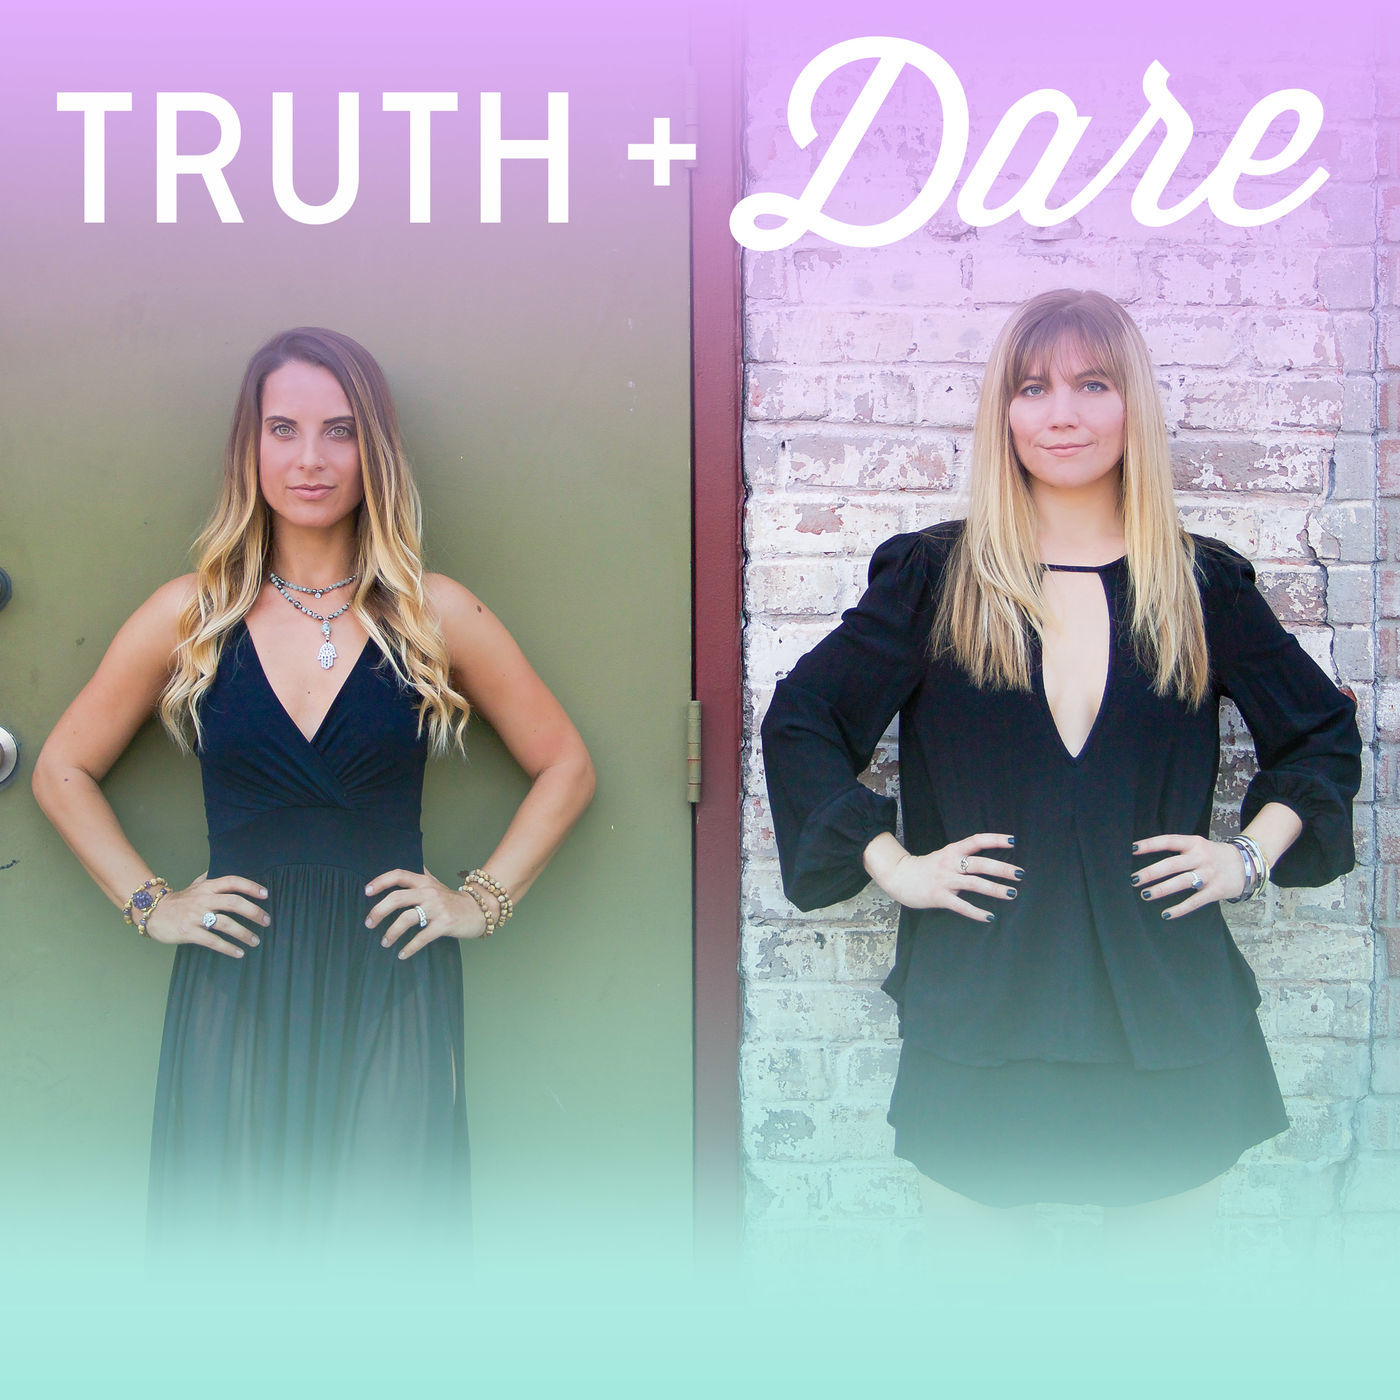 Plush Carly On Apple Podcasts Truth Female Auntic Realtransformation By Allie Truth Female Auntic Real Watch Truth Or Dare Online Free 2018 Watch Truth Or Dare Online Free Go Movies houzz 01 Watch Truth Or Dare Online Free